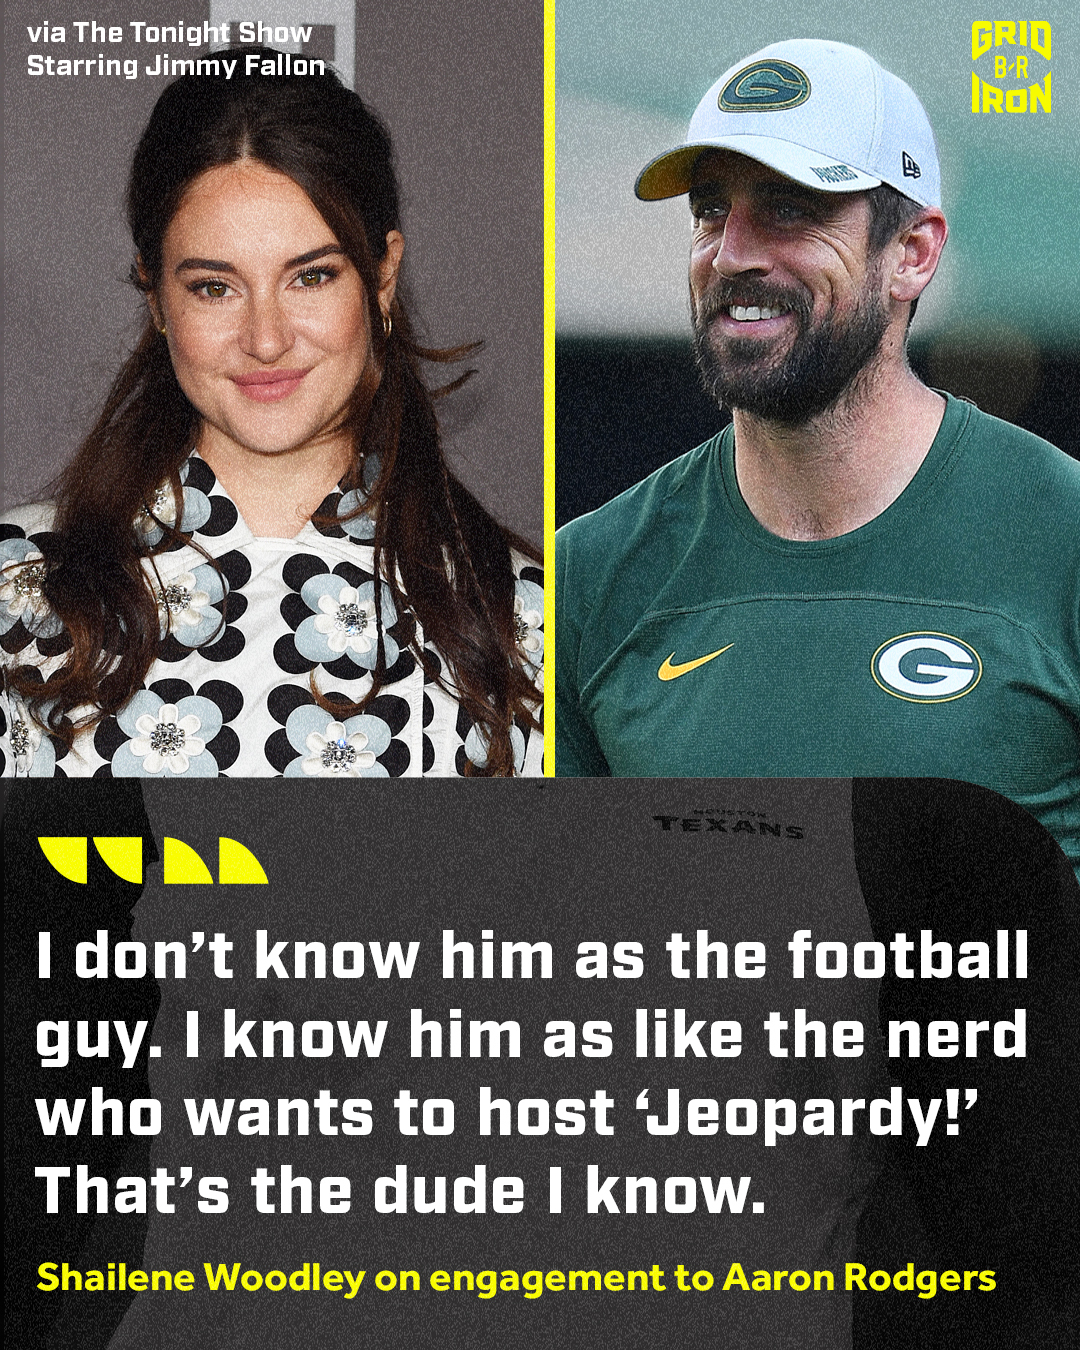 Shailene Woodley confirms that she and Aaron Rodgers are engaged Photo